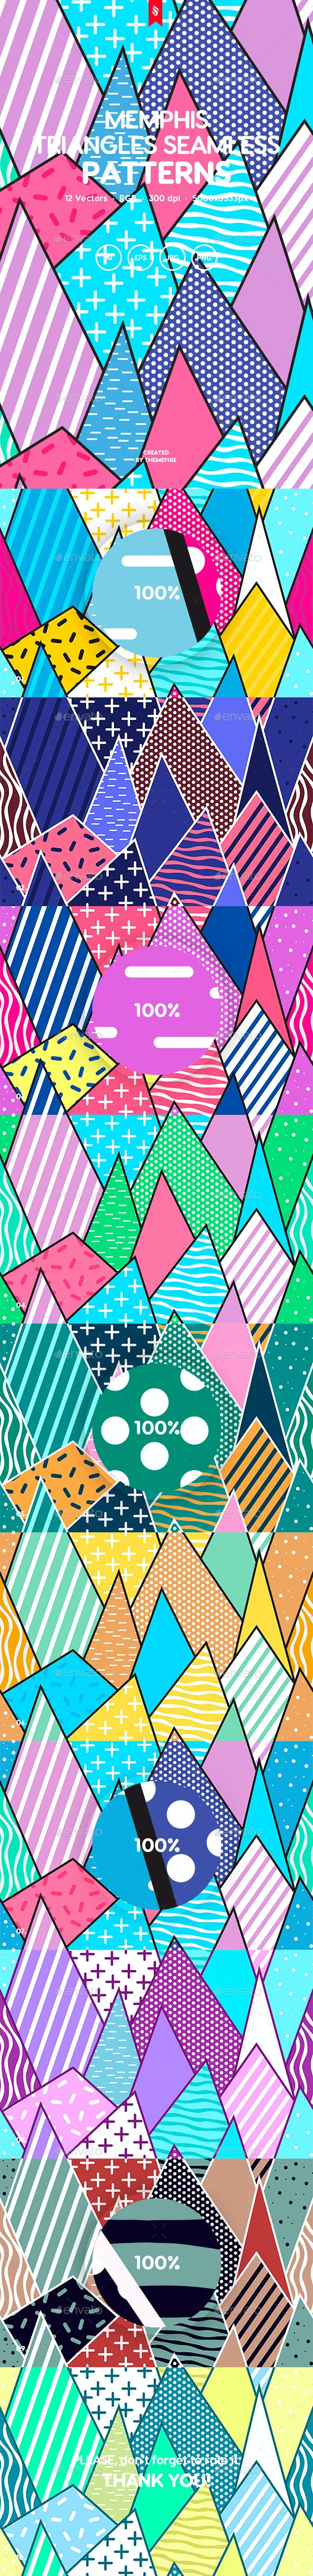 Memphis Triangles Seamless Patterns - Patterns Backgrounds